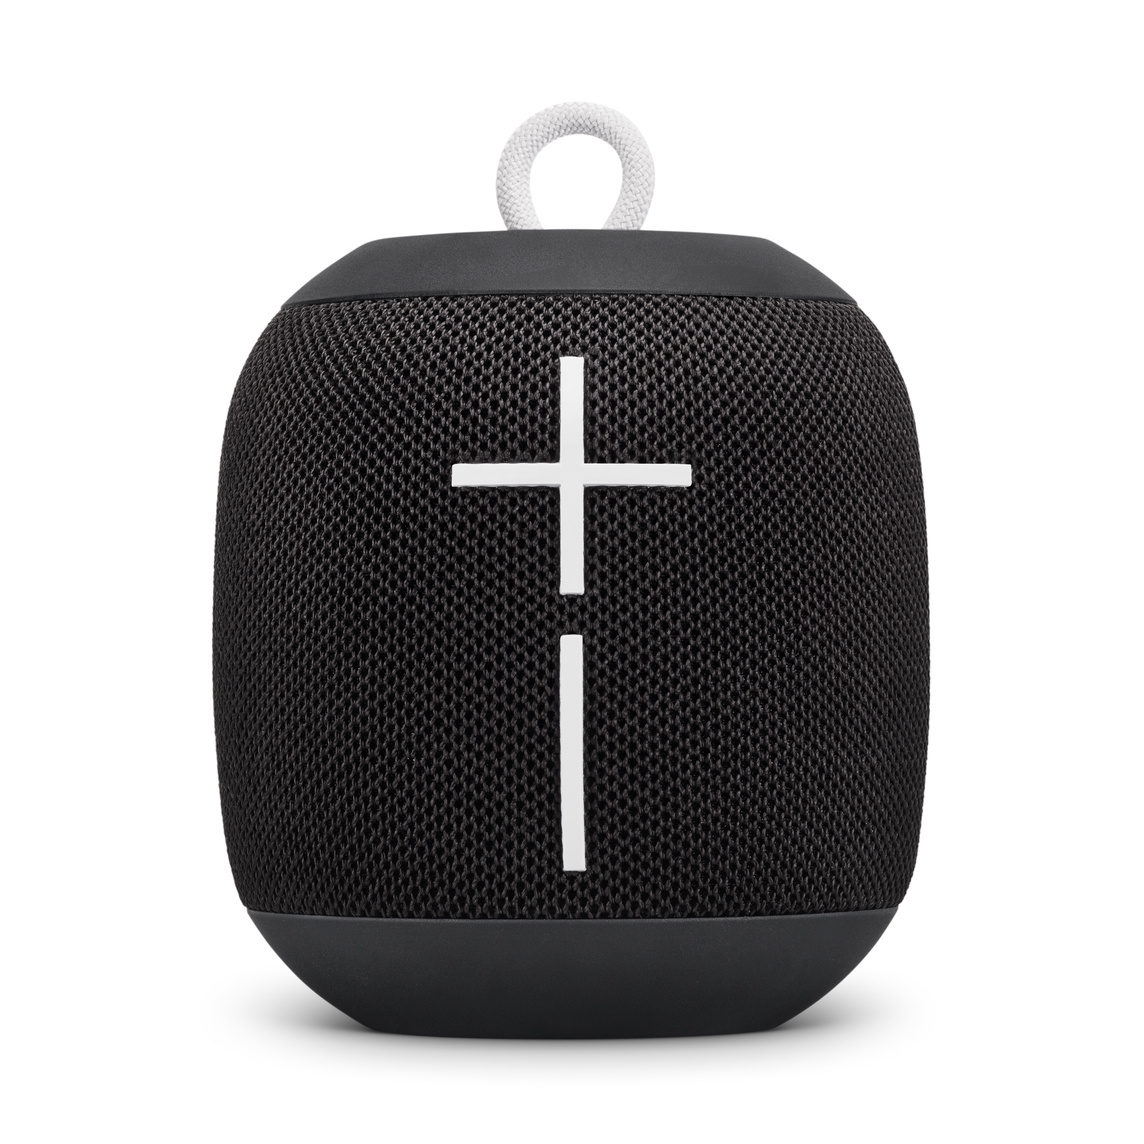 Caixa de Som Ultimate Ears Wonderboom - Preto